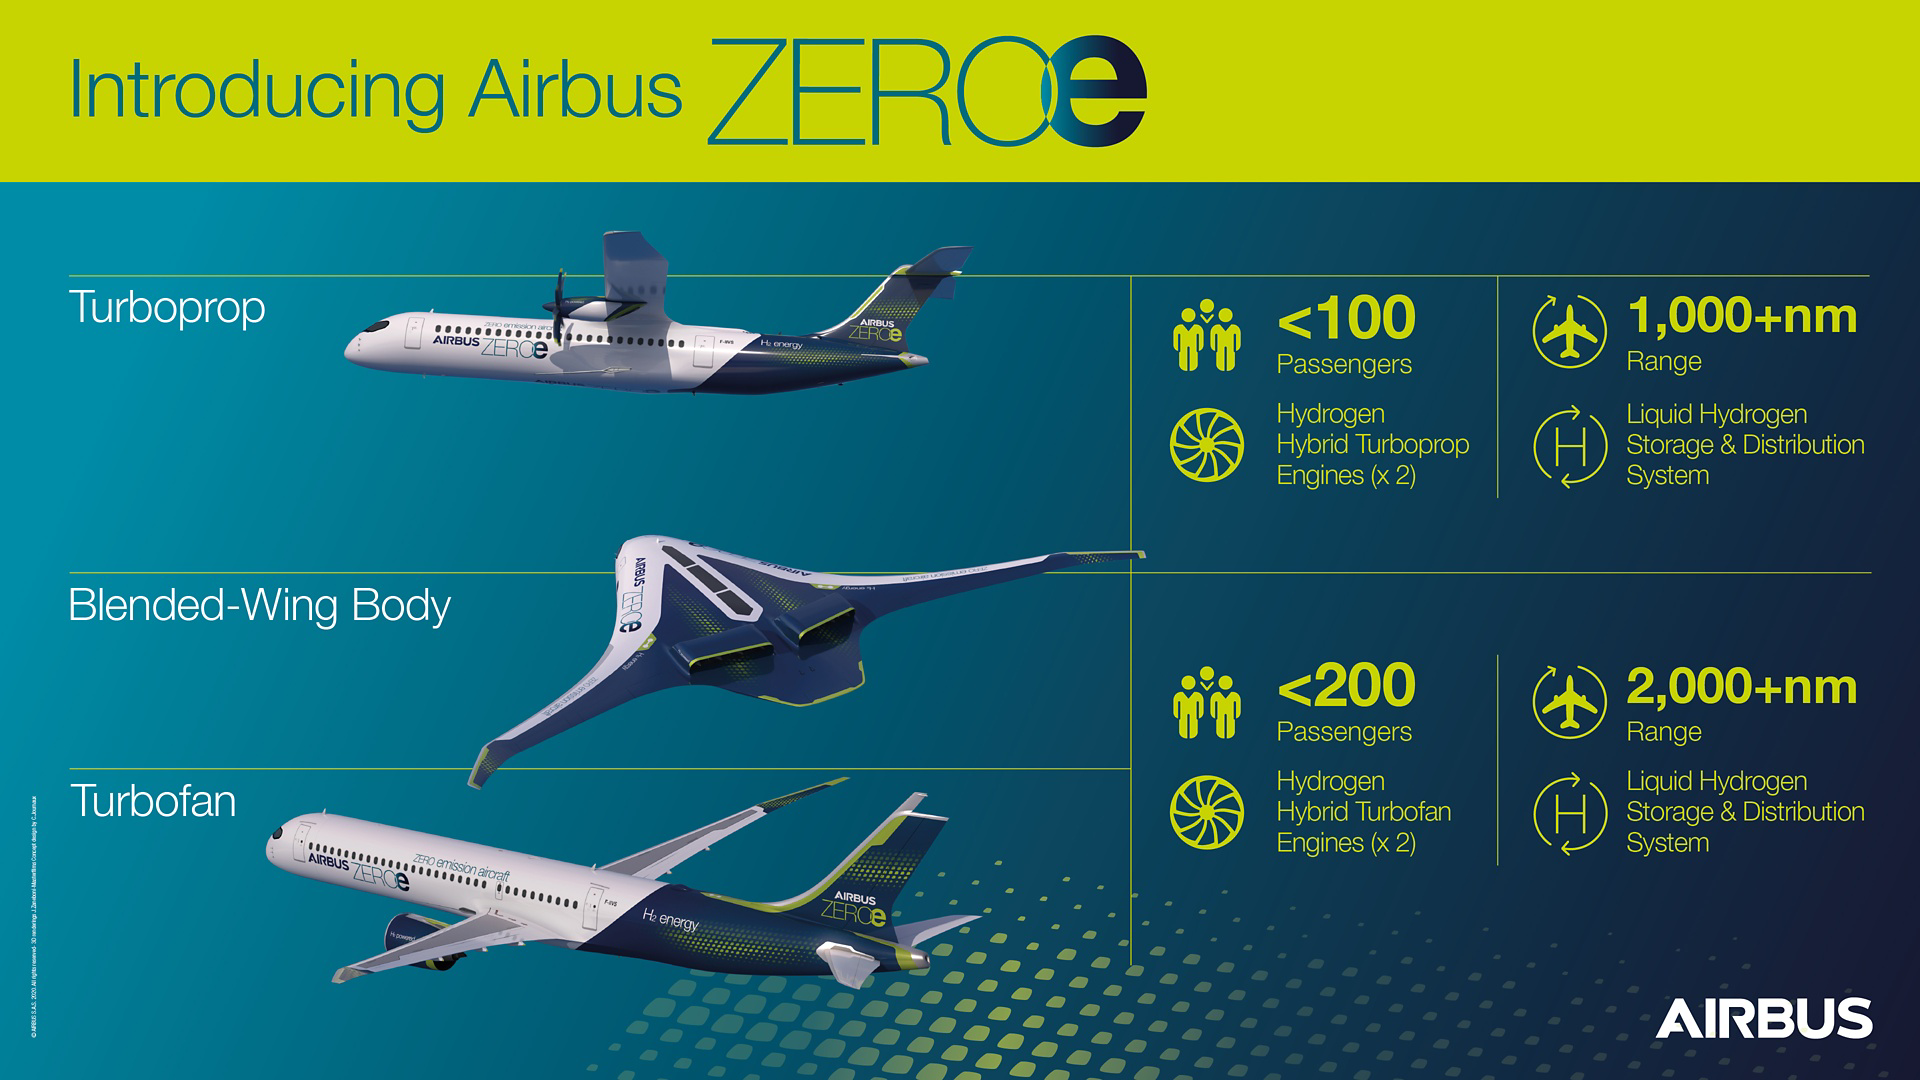 Discover the three zero-emission concept aircraft known as ZEROe in this infographic. These turbofan, turboprop, and blended-wing-body configurations are all hydrogen-hybrid aircraft.